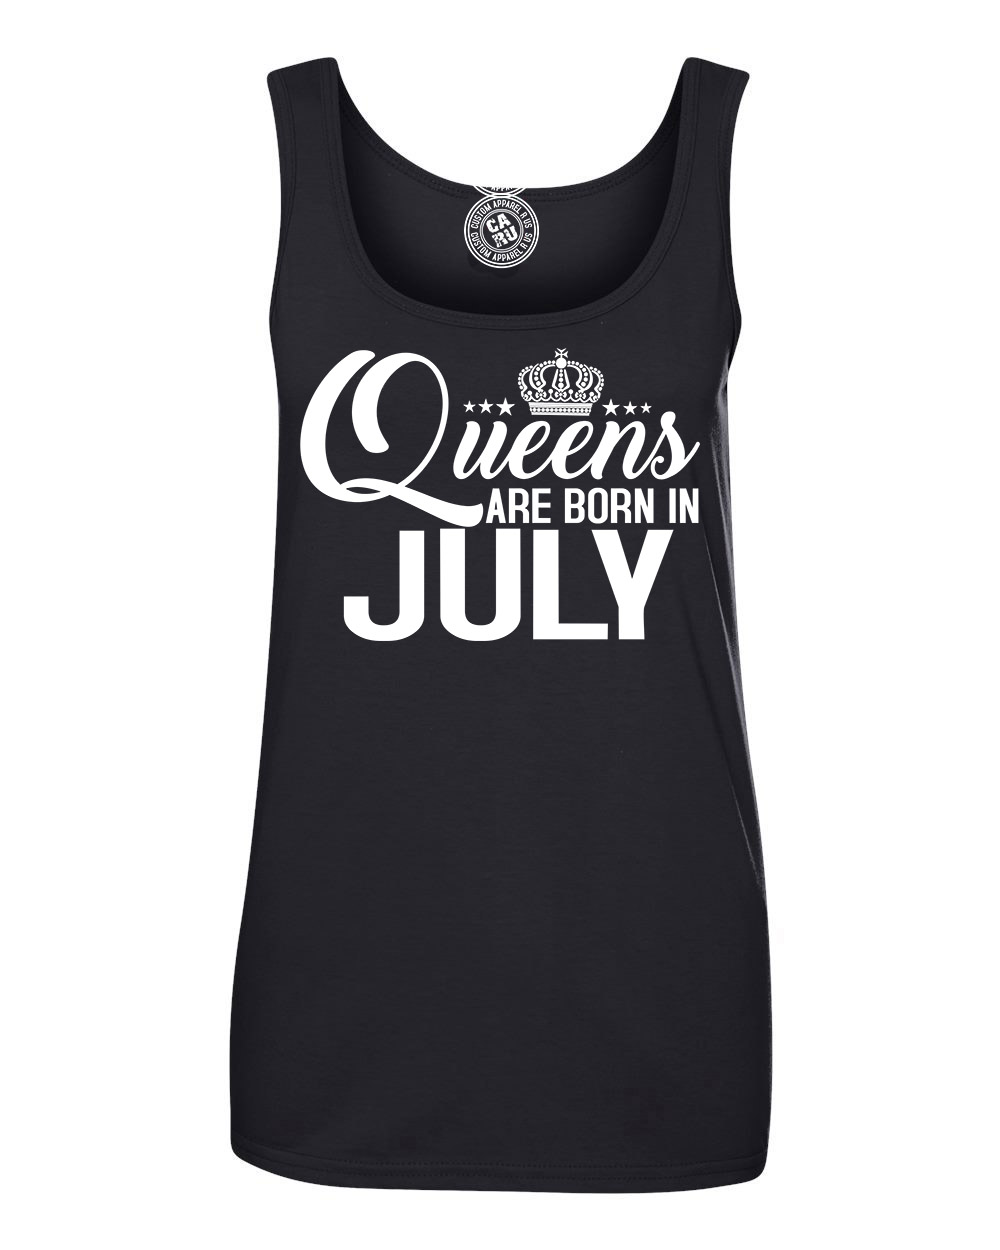 Black t shirt ebay - Black T Shirt Ebay Queens Are Born In July Birthday Womens Tank